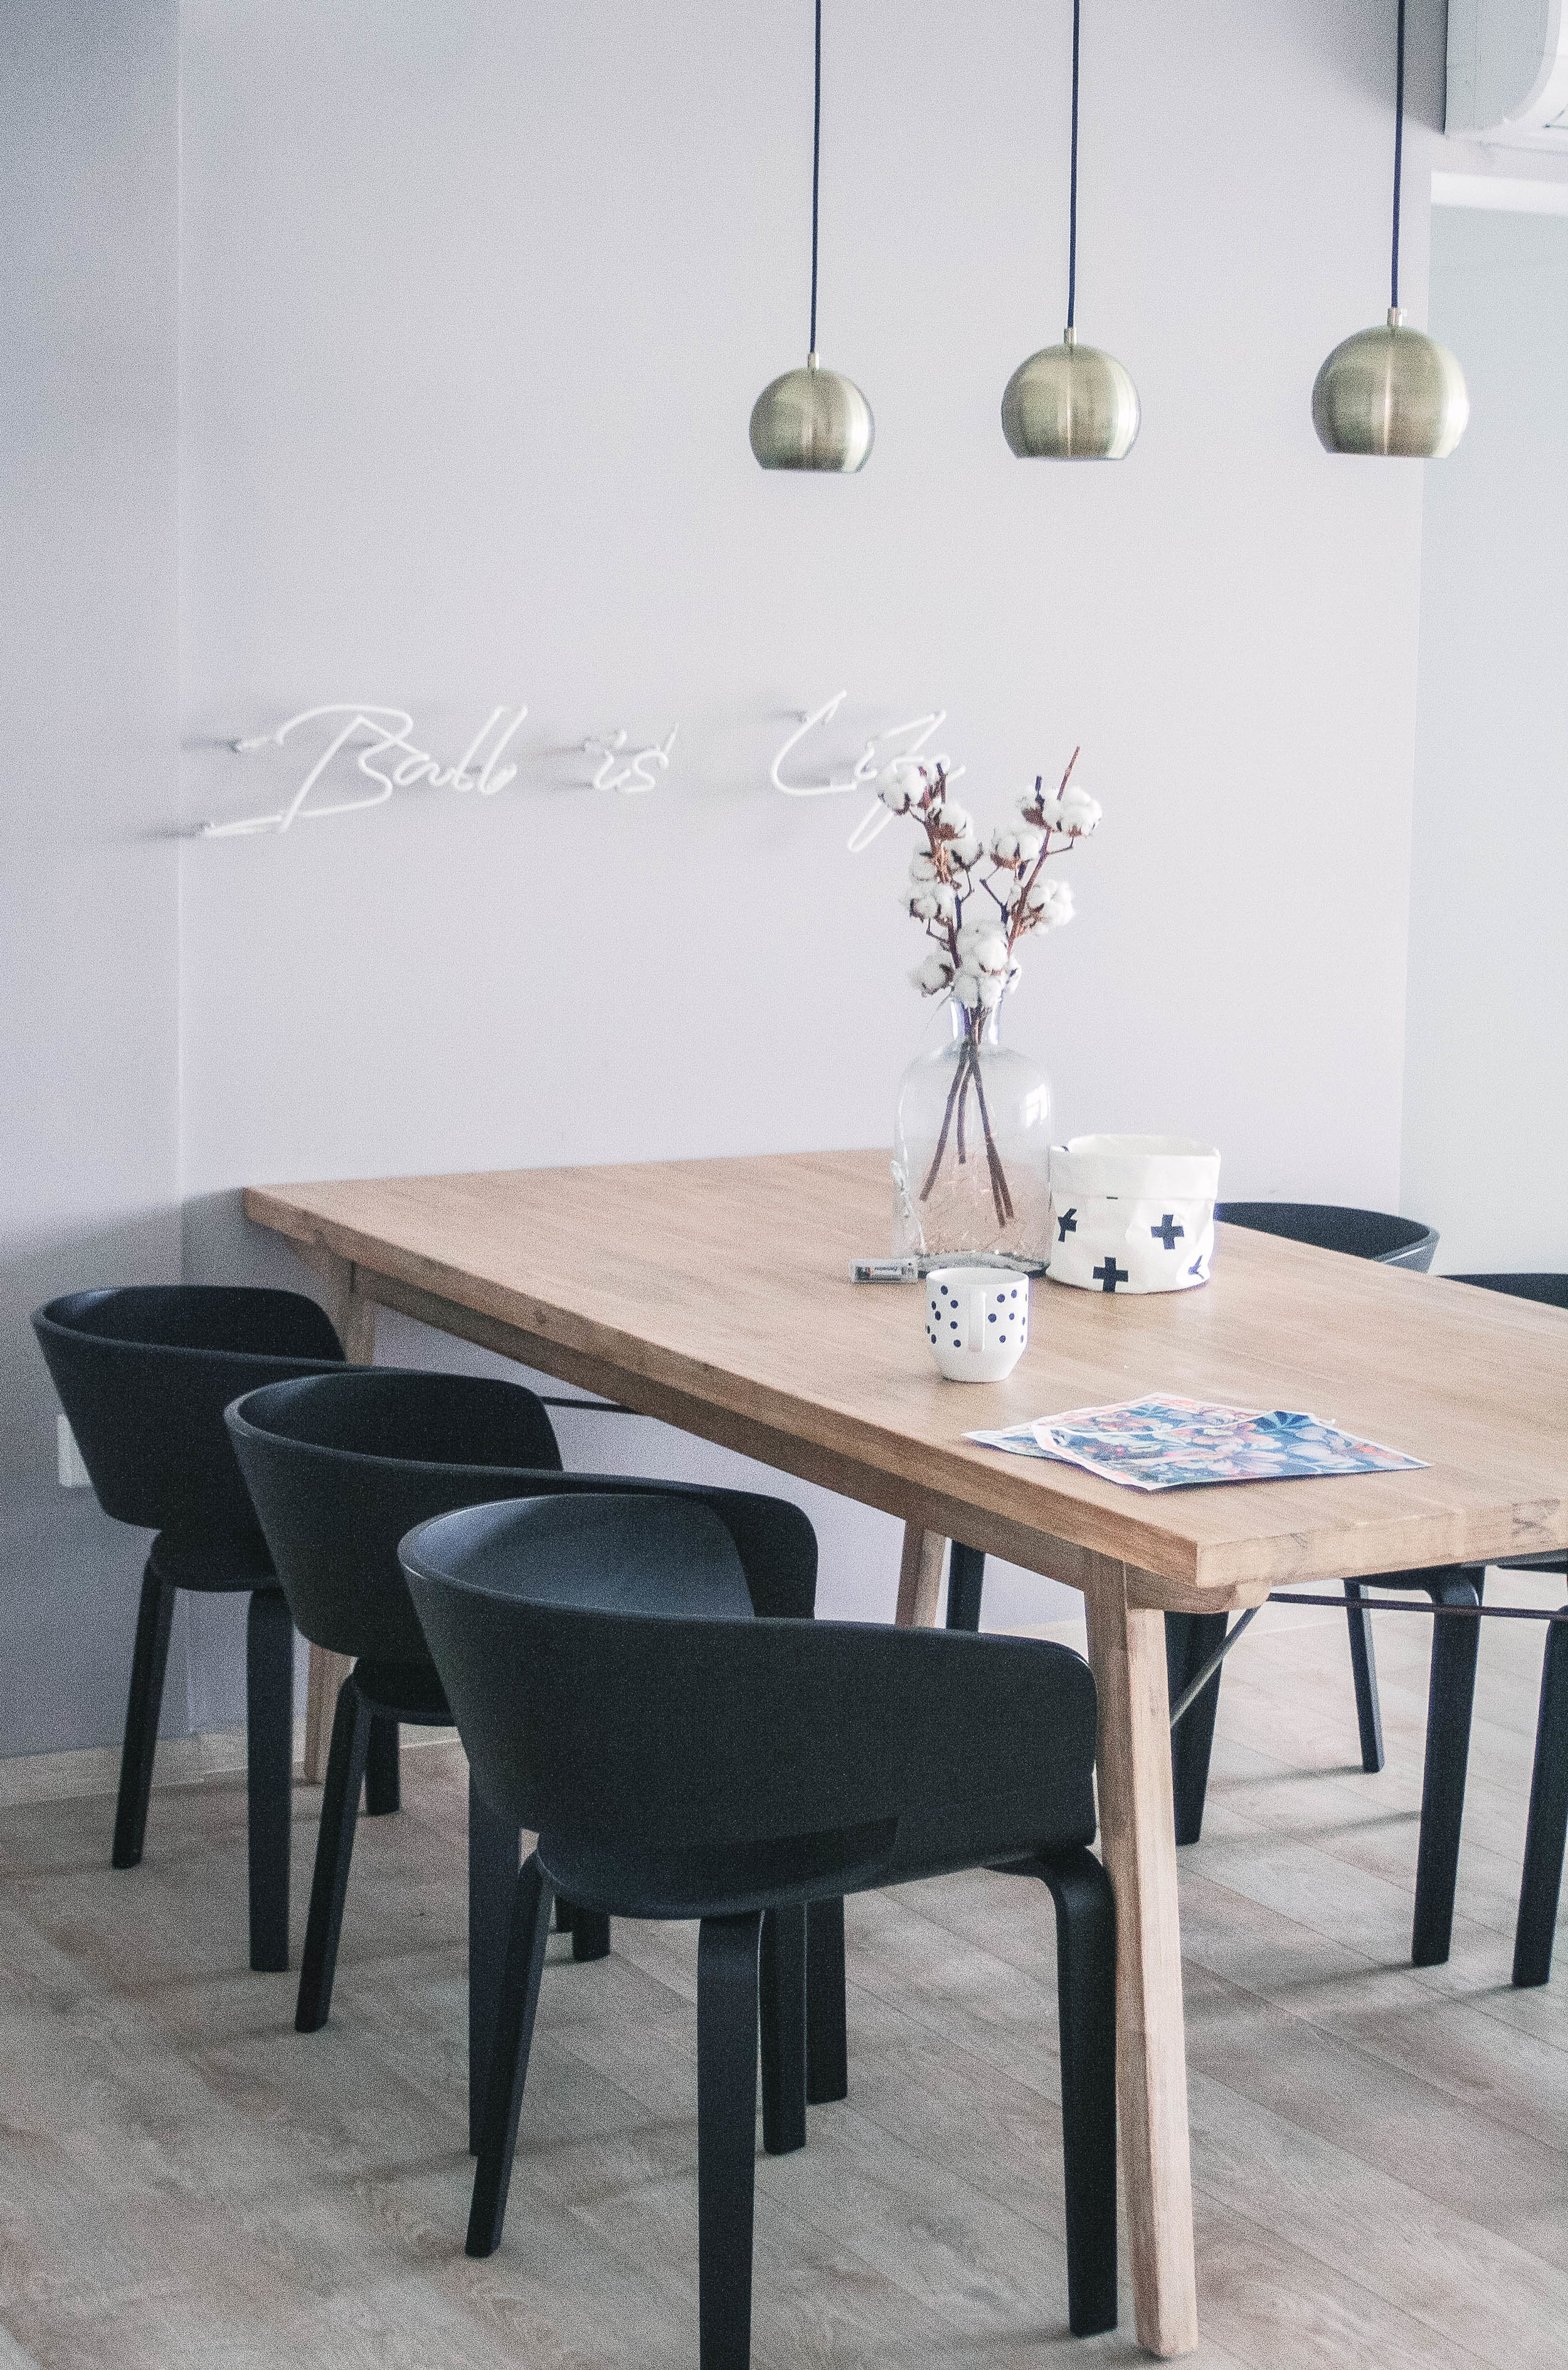 Gold Hanging Lights Wooden Dining Table